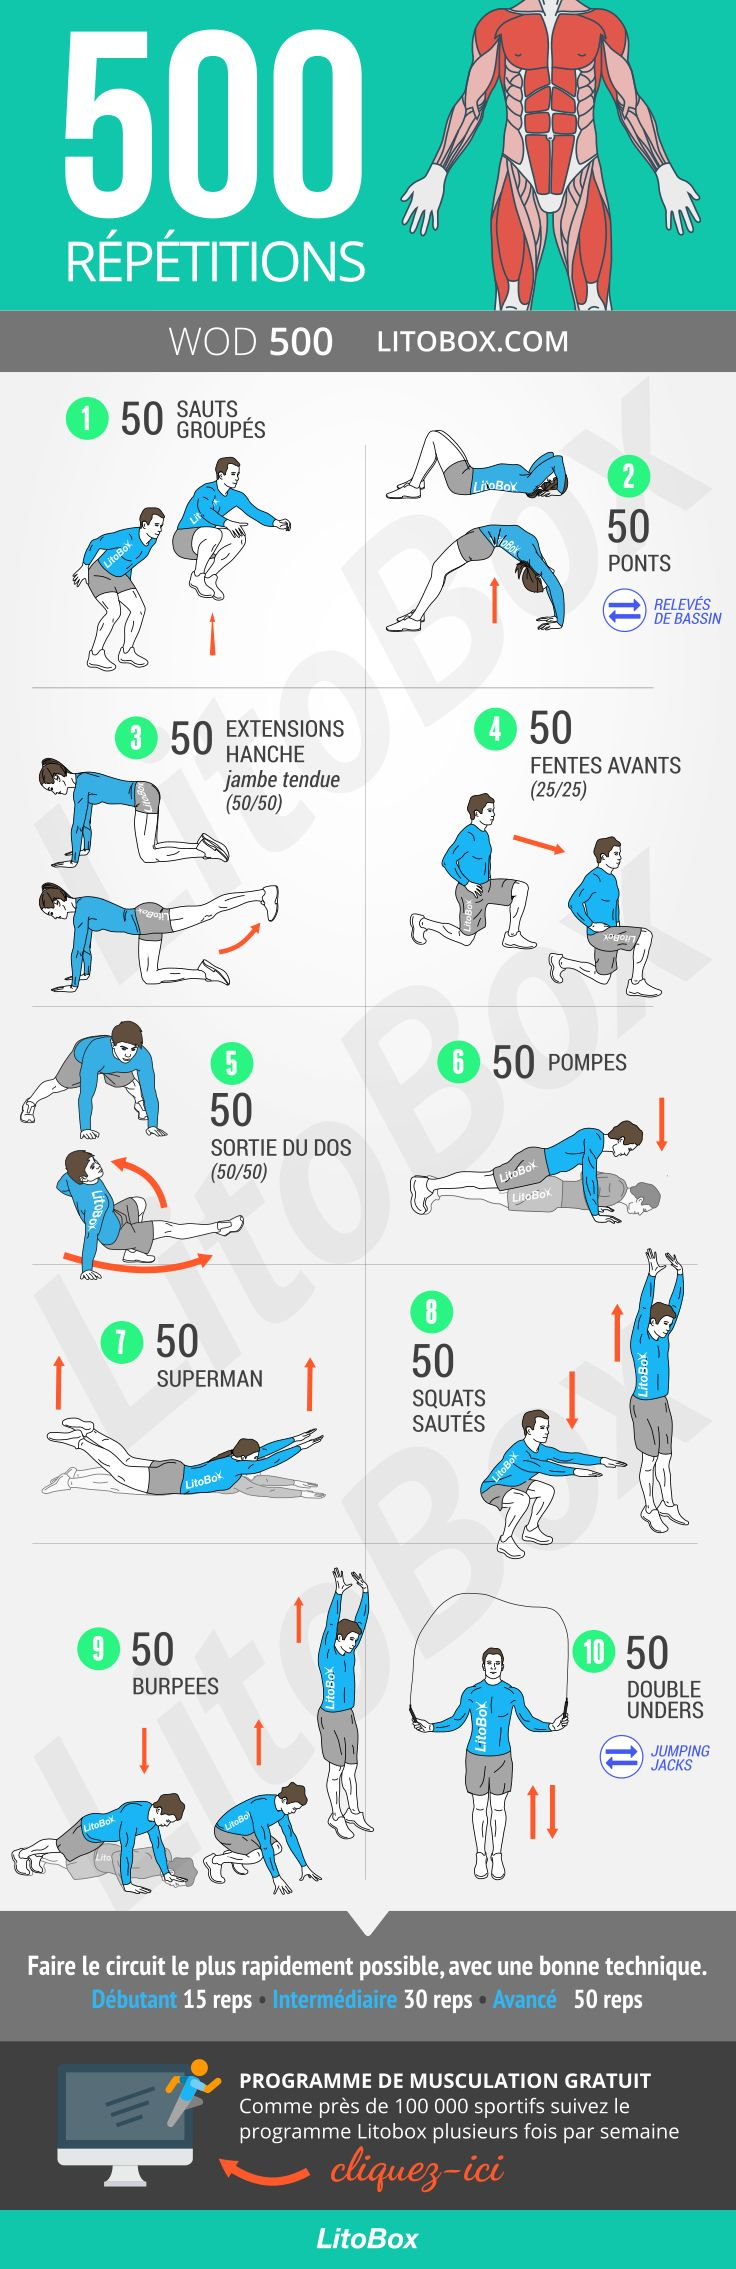 Functional training Workout routines Exercise workouts